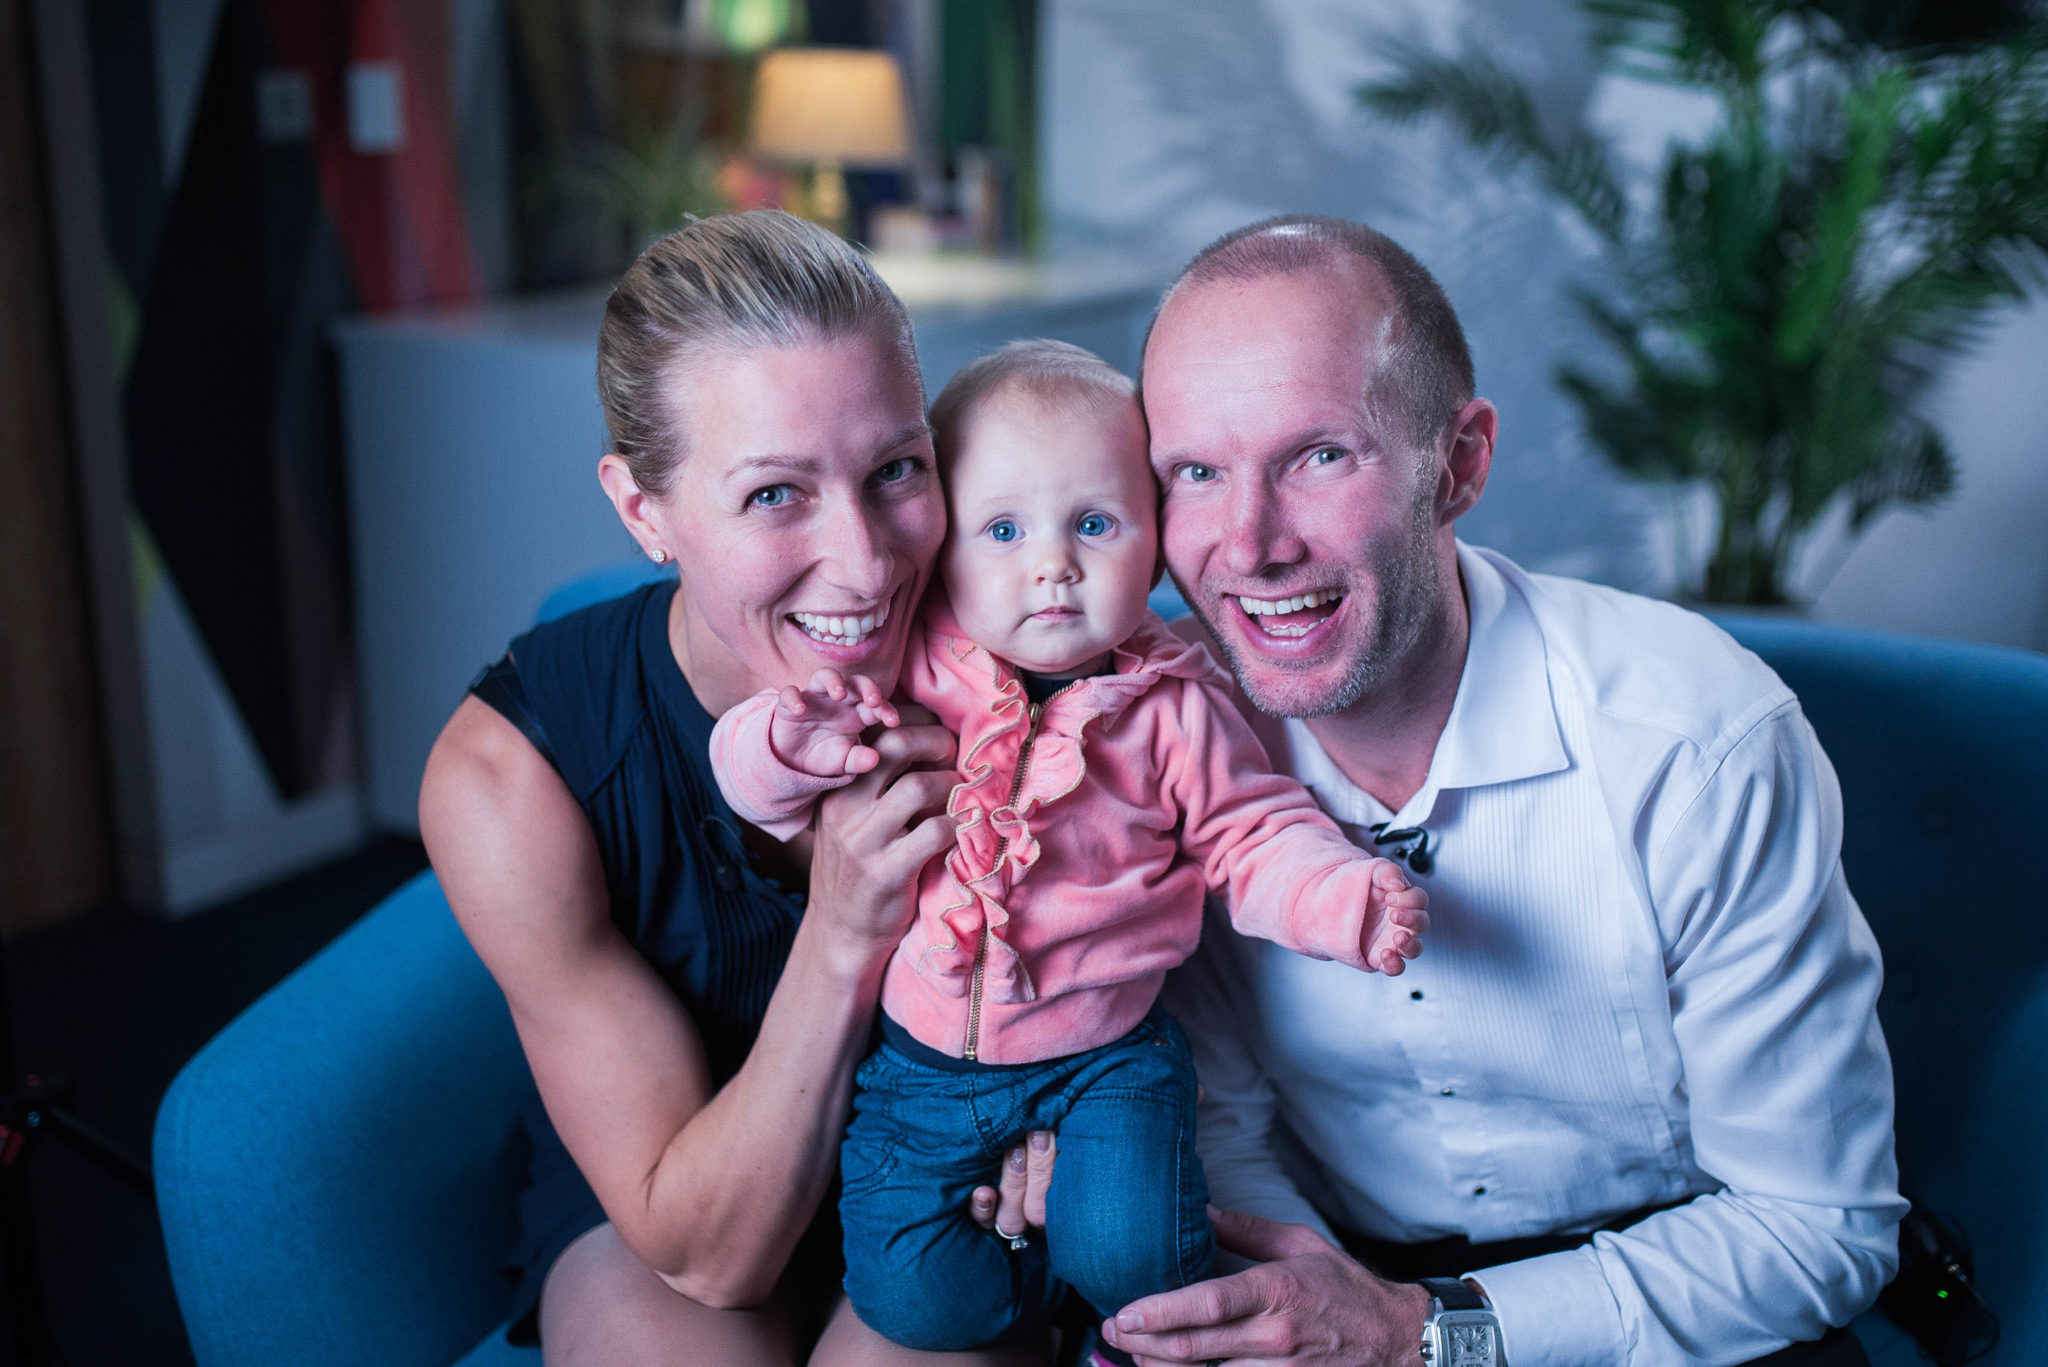 A smiling couple seated with their baby son between them